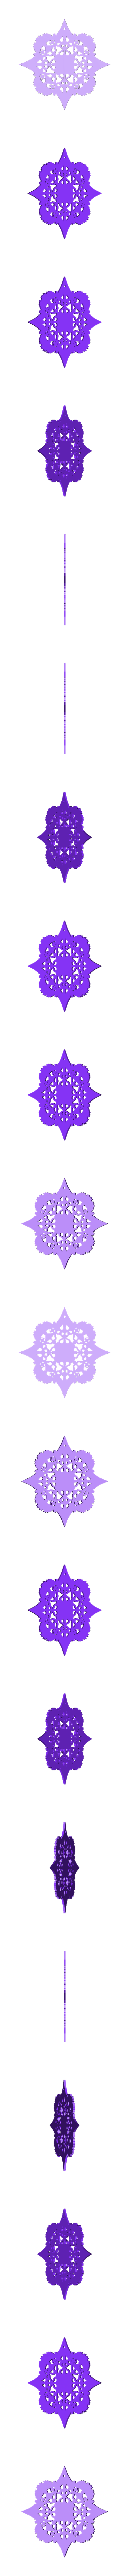 GothicSnowflake2.STL Download free STL file Gothic Snowflakes • 3D printer template, Jeyill3